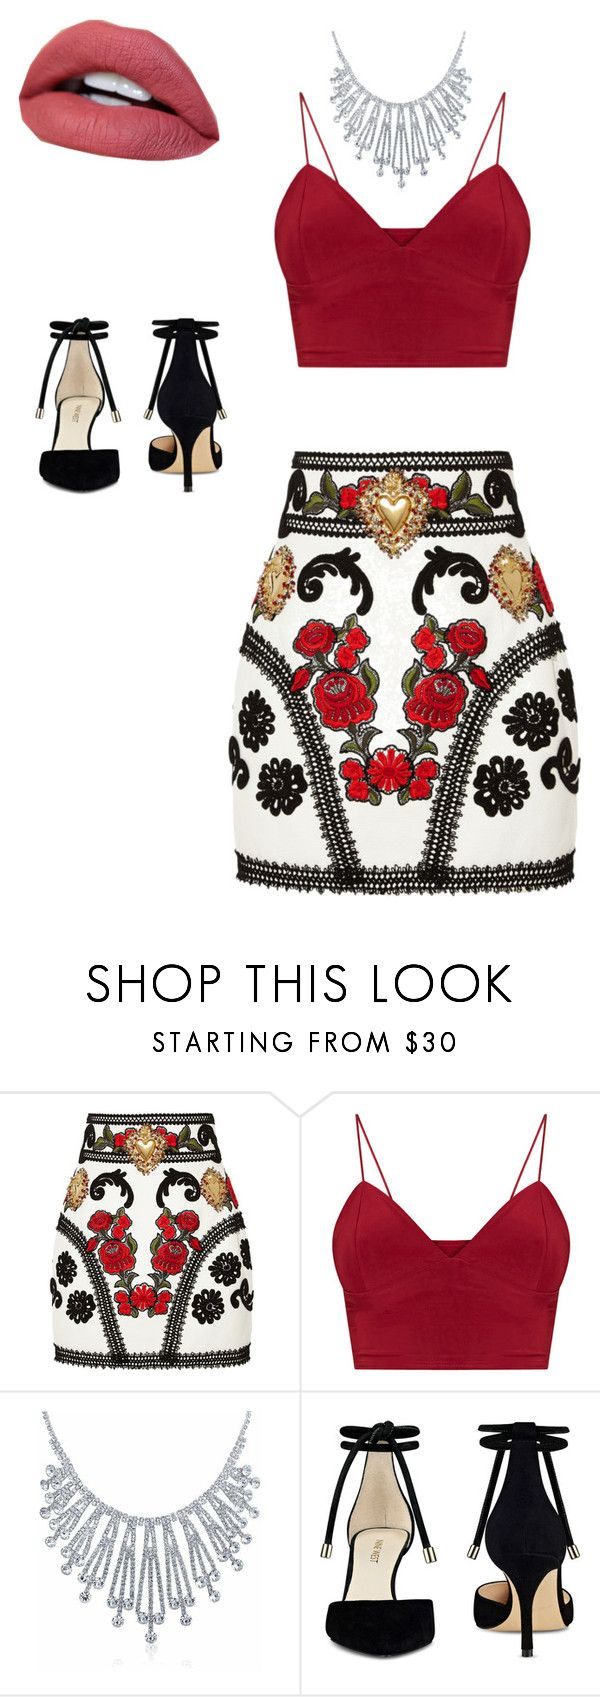 """Sin título #74"" by pilargabra on Polyvore featuring moda, Dolce&Gabbana, Bling Jewelry y Nine West"